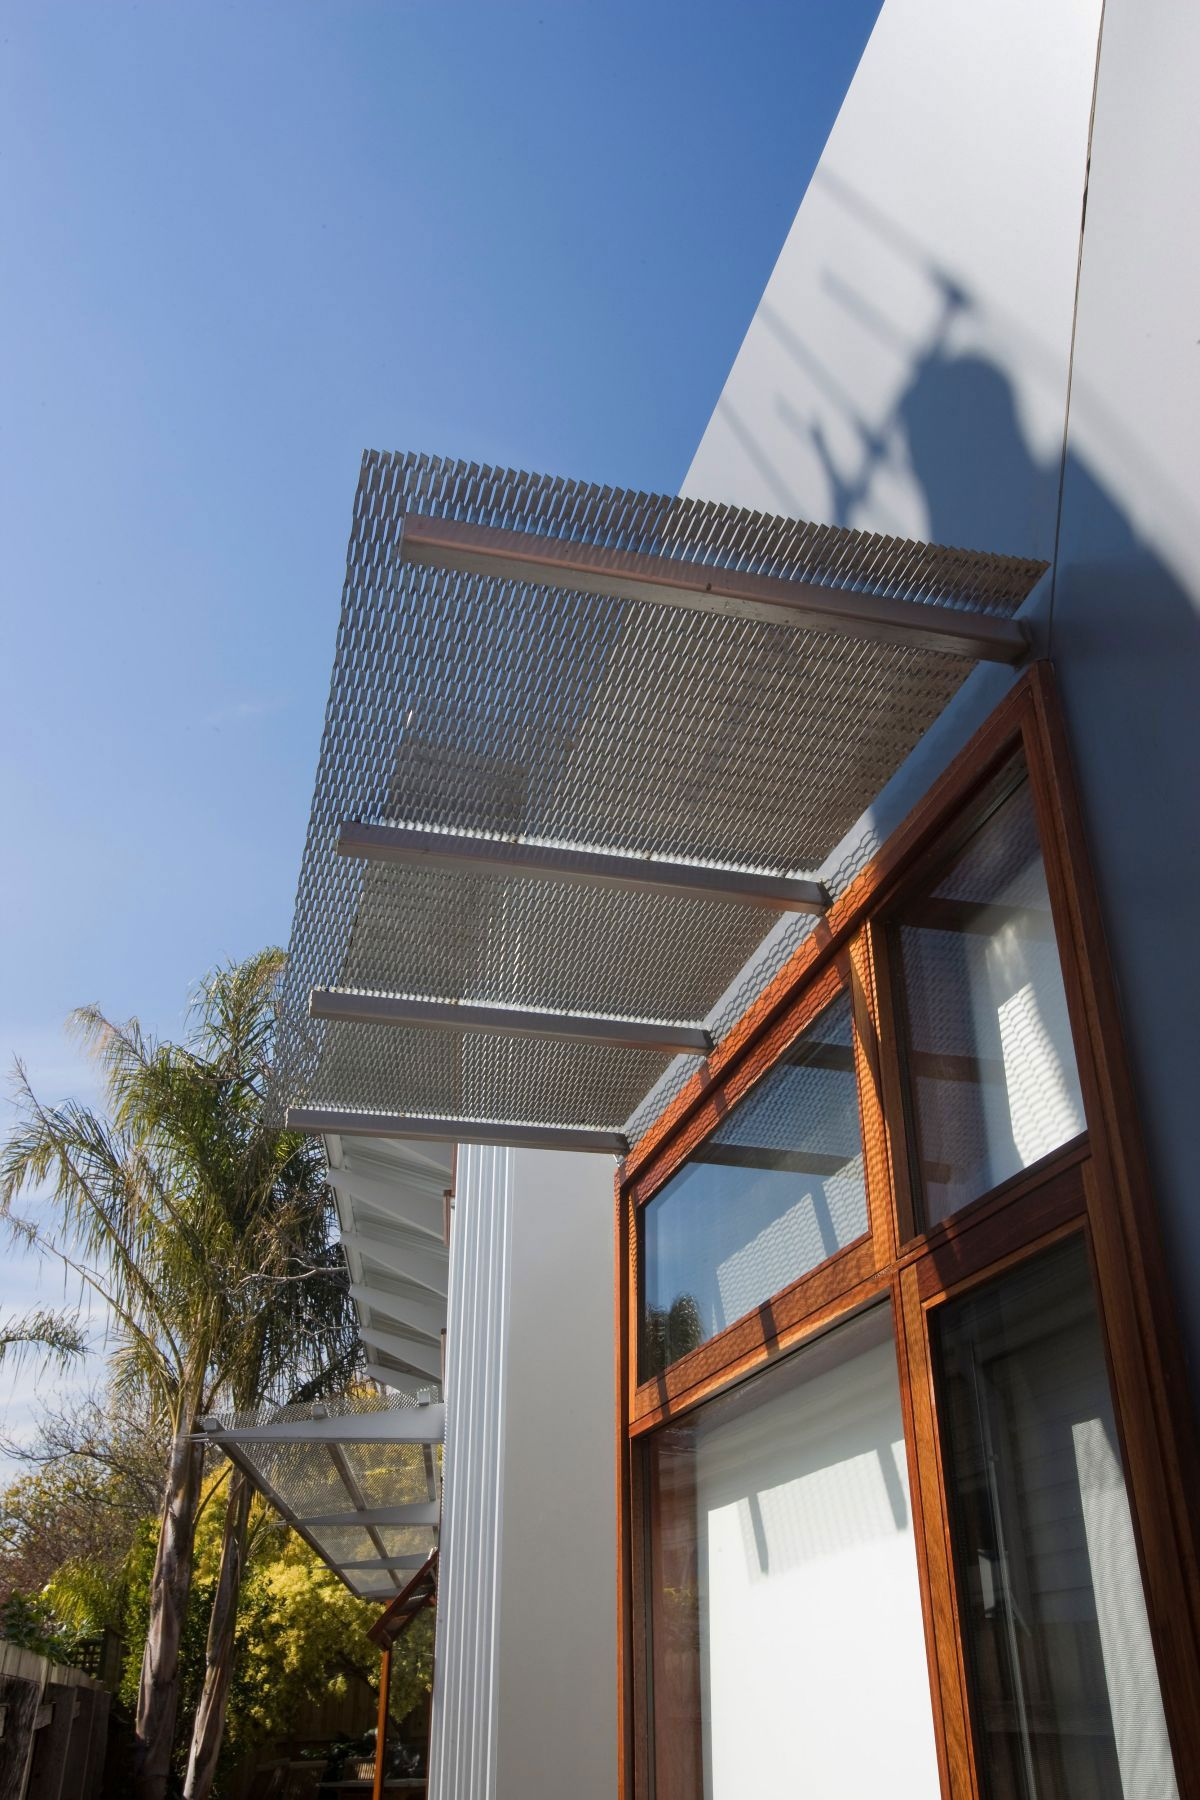 House wooden window design  modern single house design with steel mesh awnings and wooden